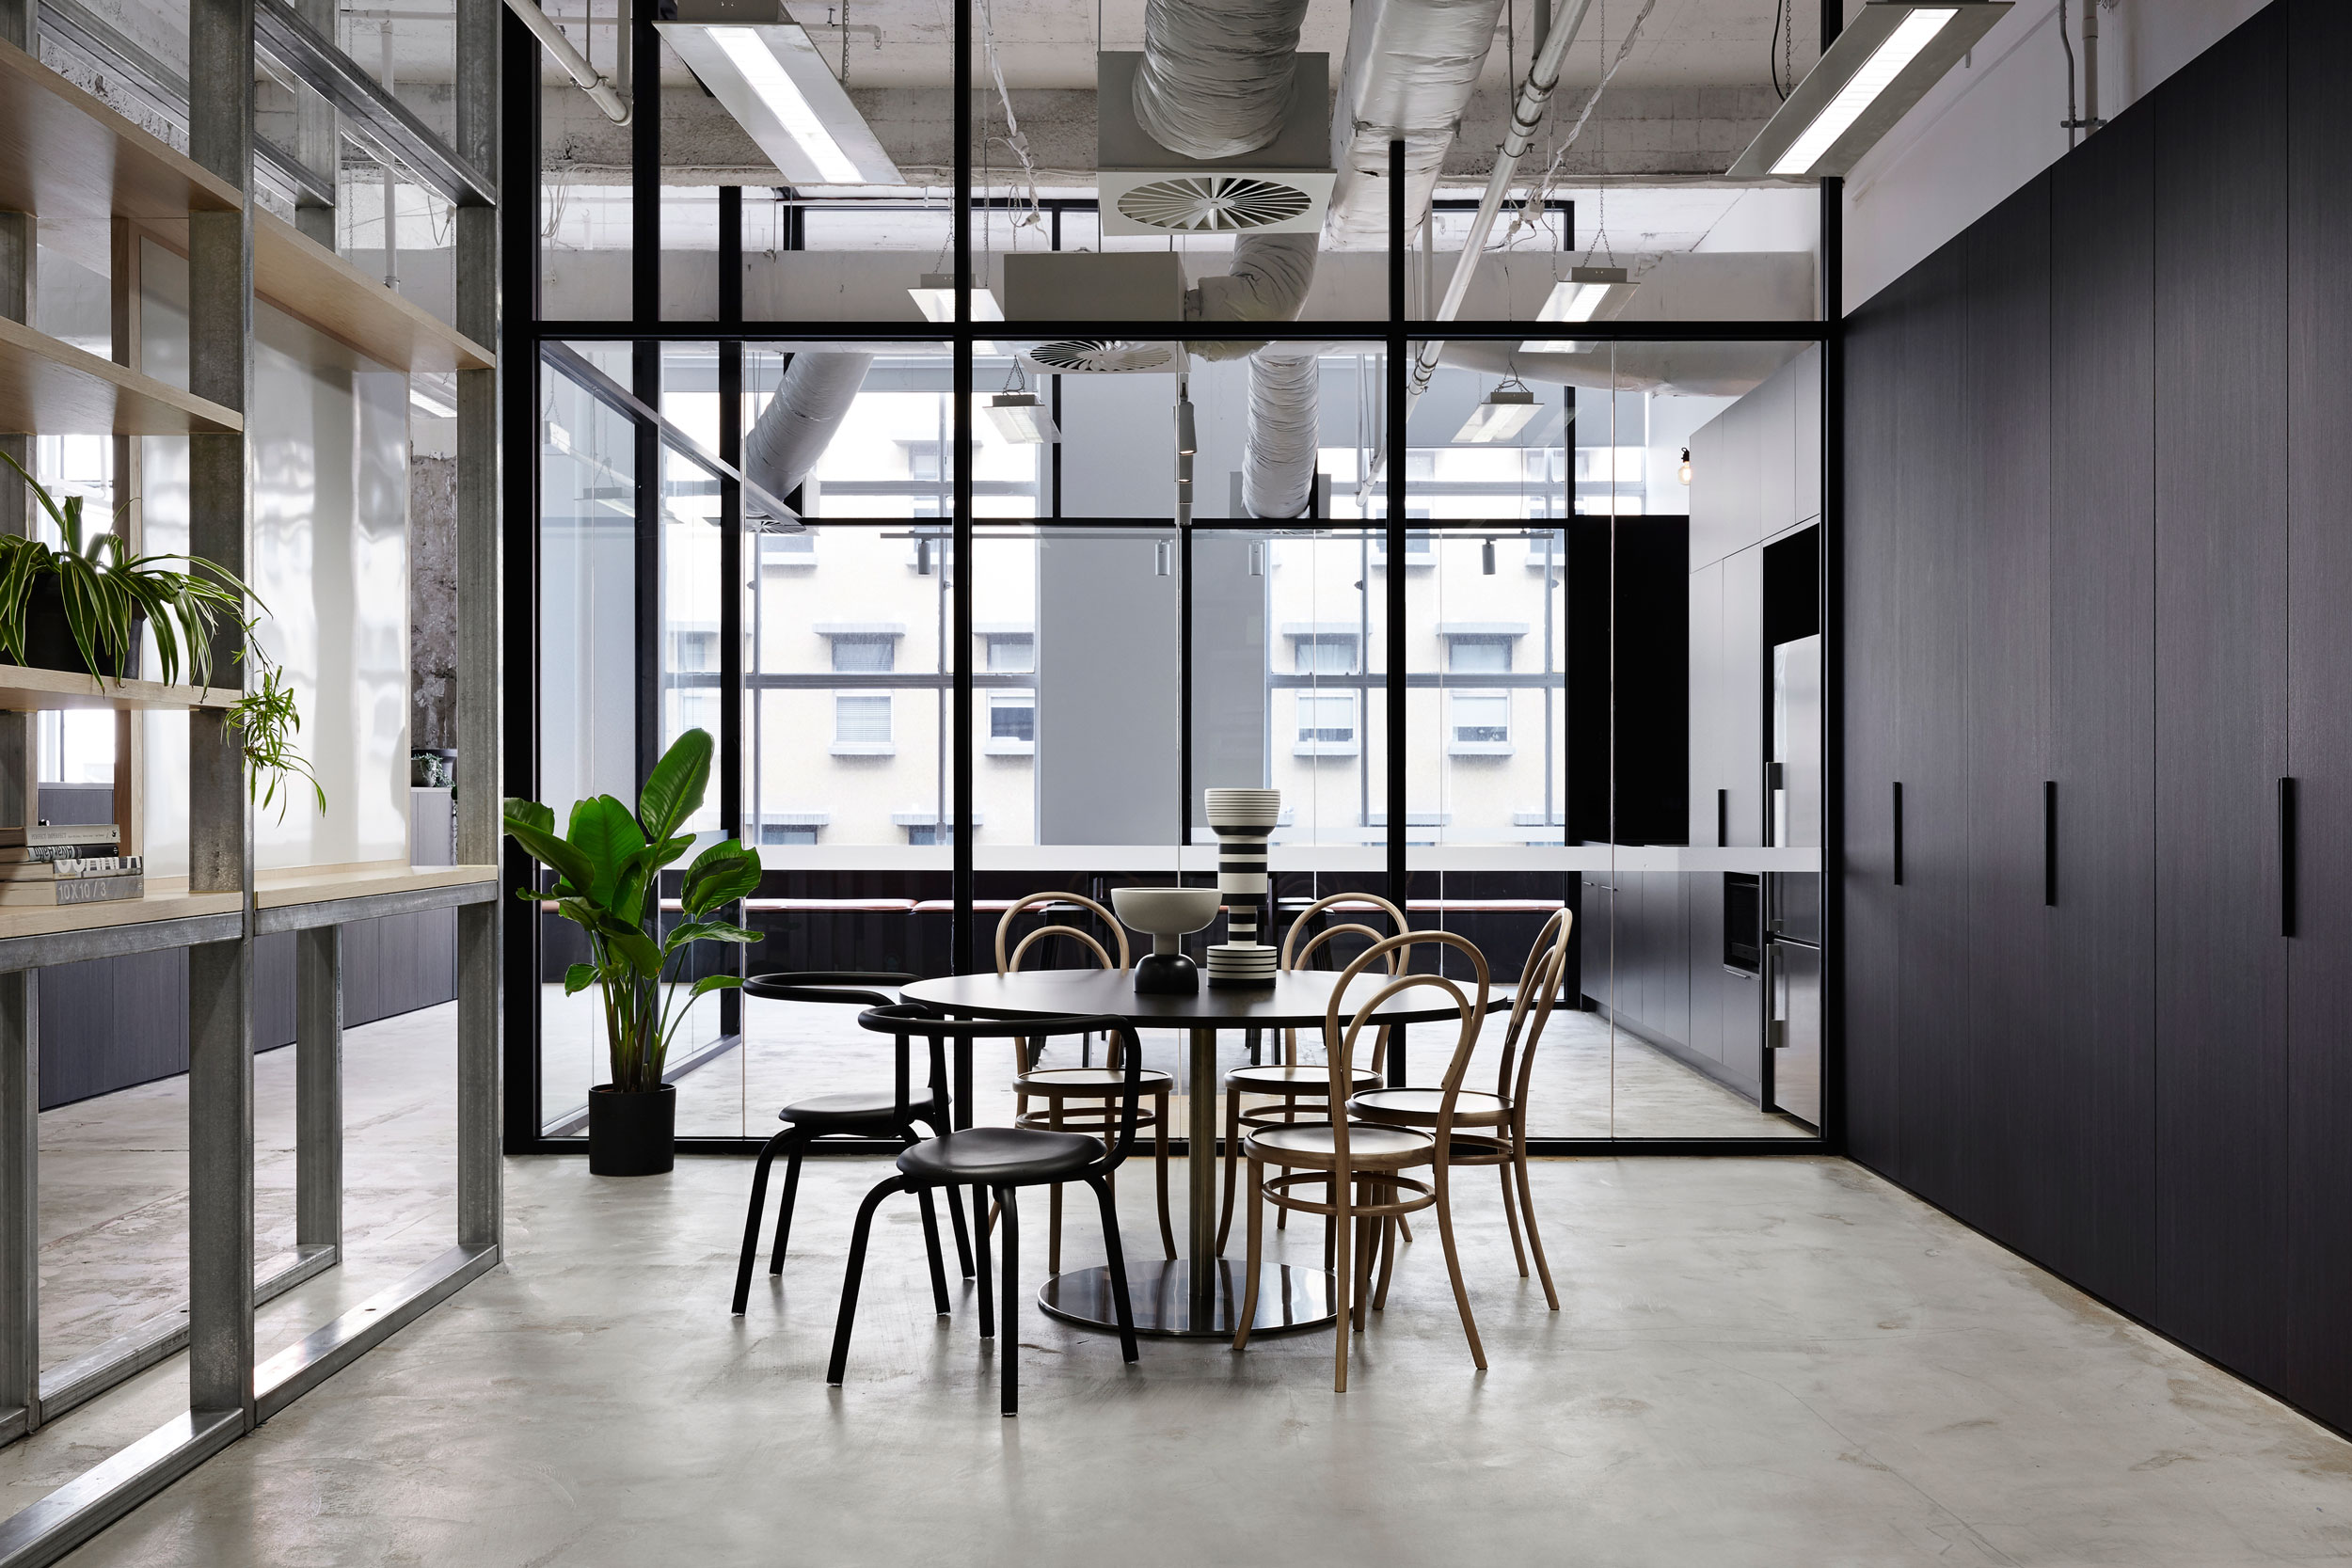 Interior_dining_area_at_Fleetwood_office_in_Melbounre_photography_by_Sarah_Anderson_for_Studio_Esteta